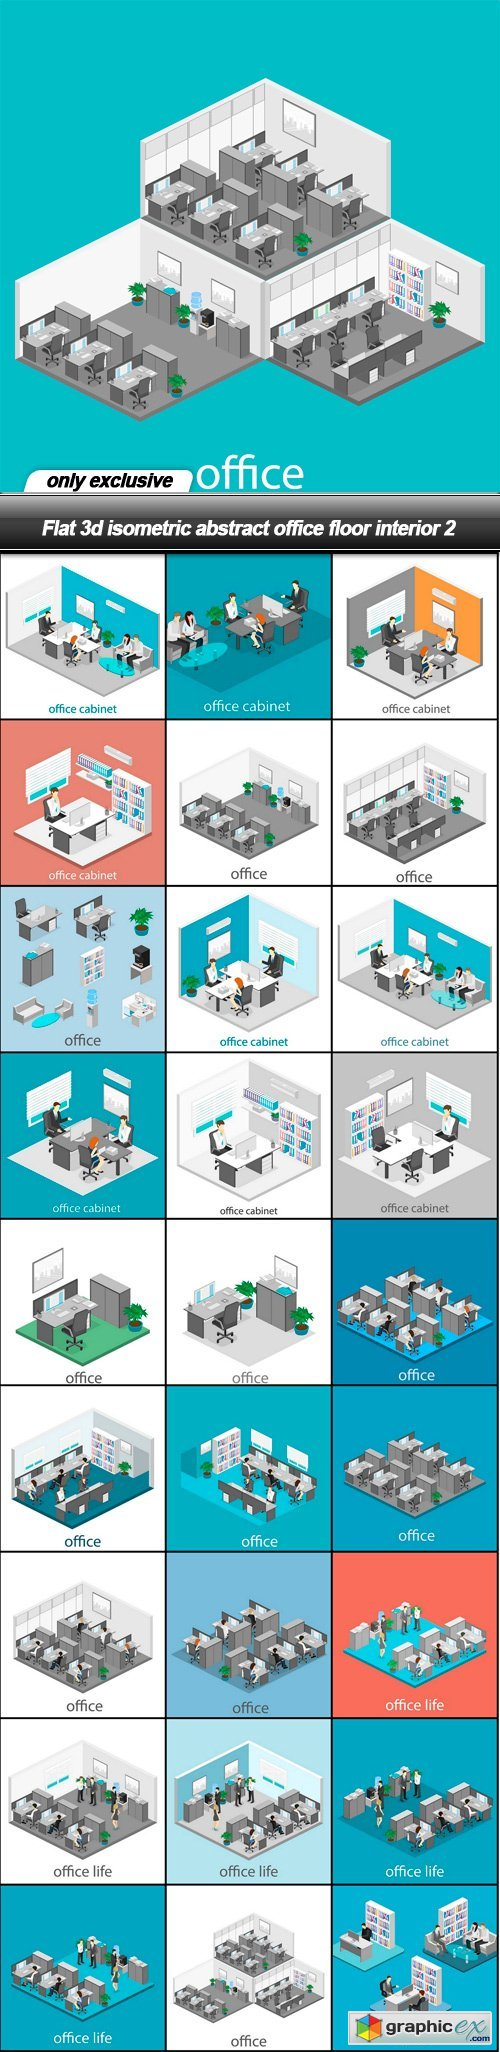 Flat 3d isometric abstract office floor interior 2 - 28 EPS